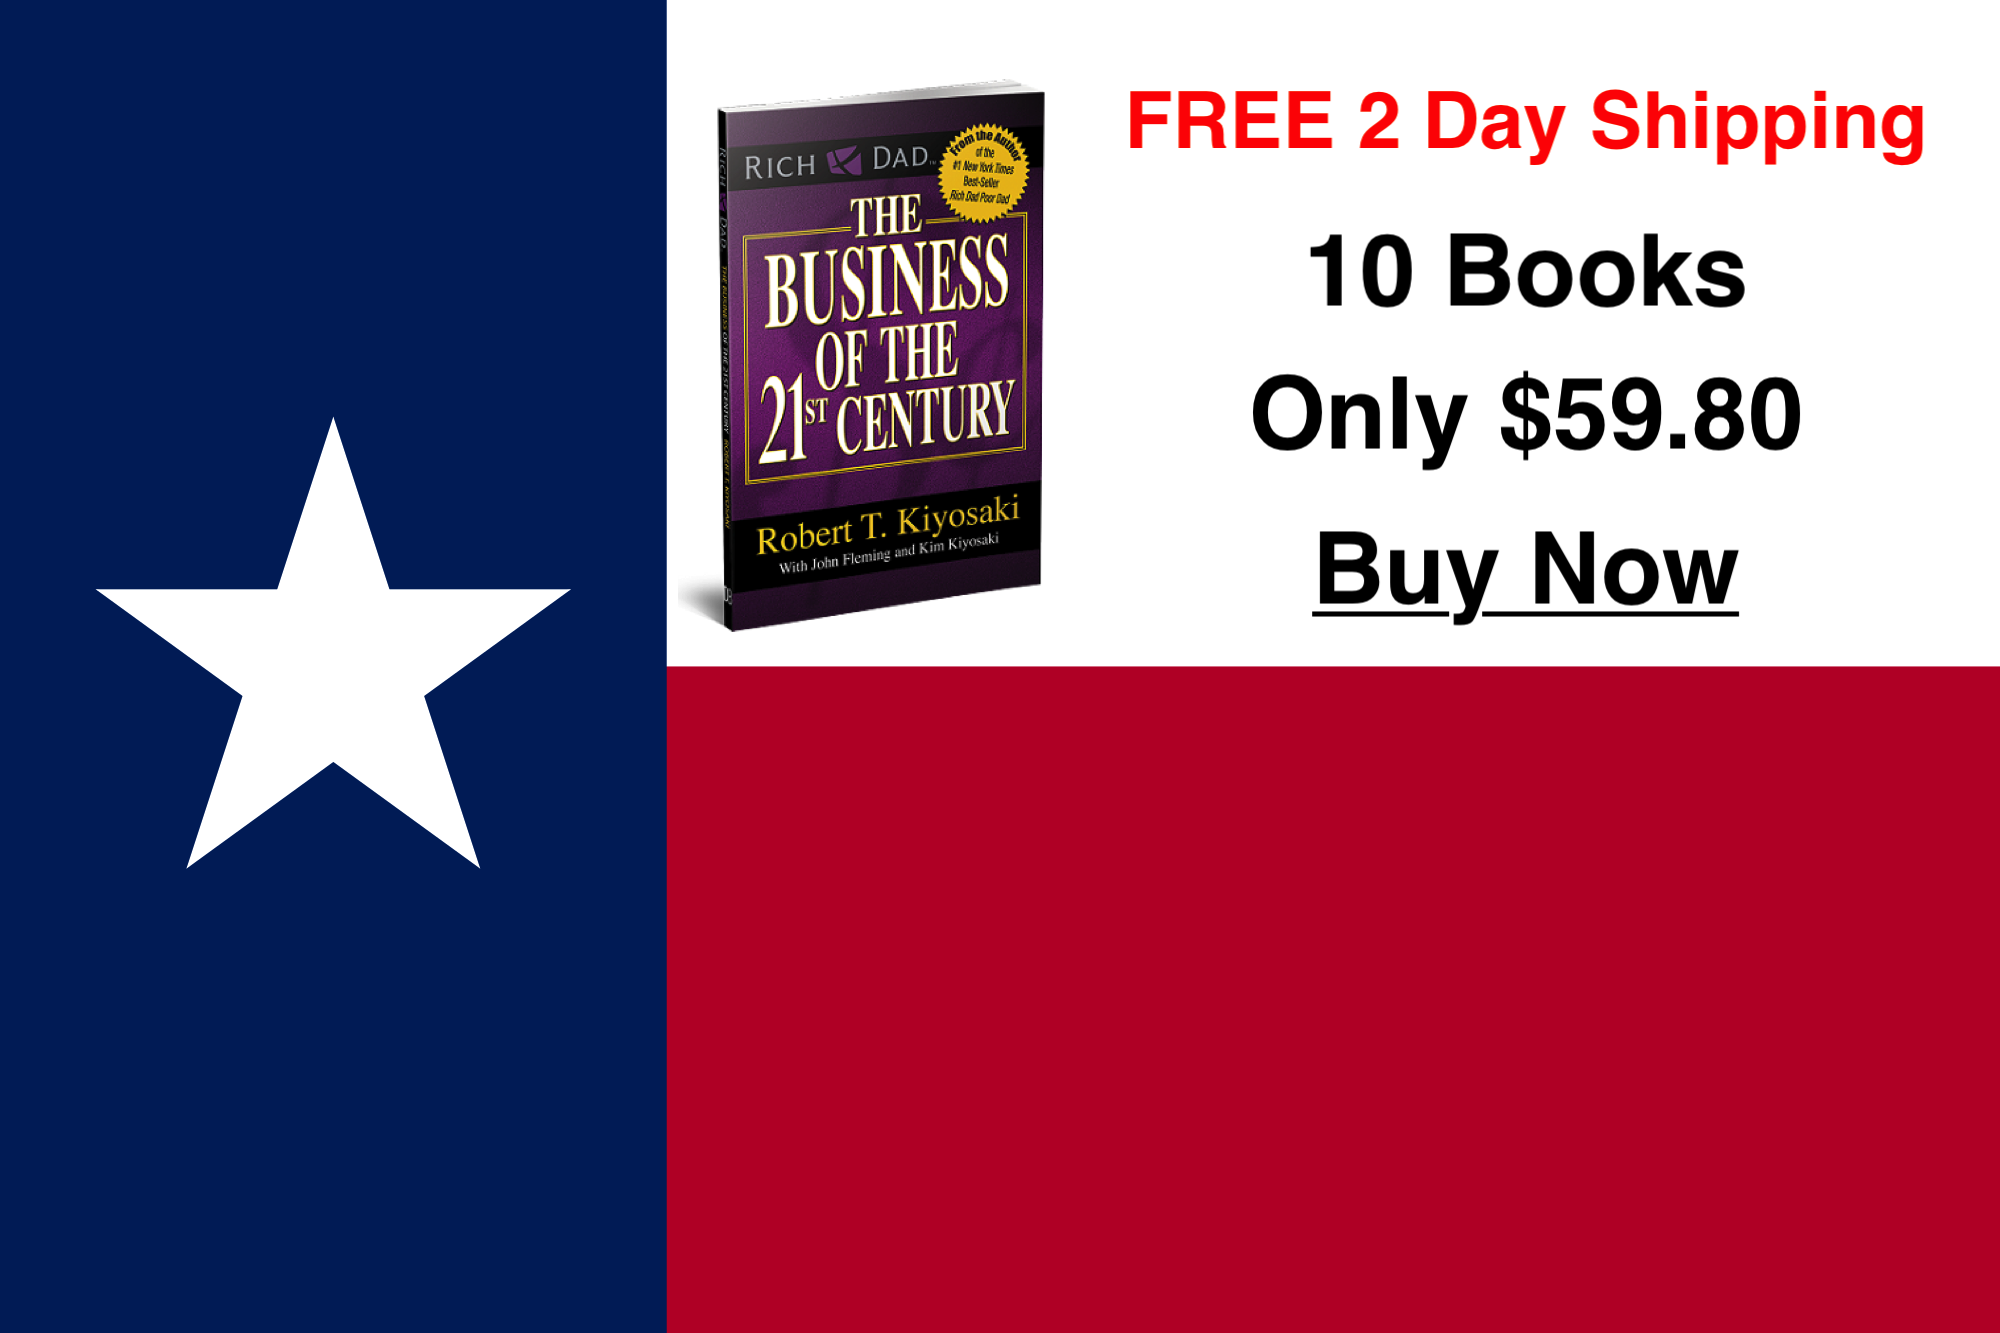 FREE 2 Day Shipping- 10 Pack: The Business of The 21st Century Book